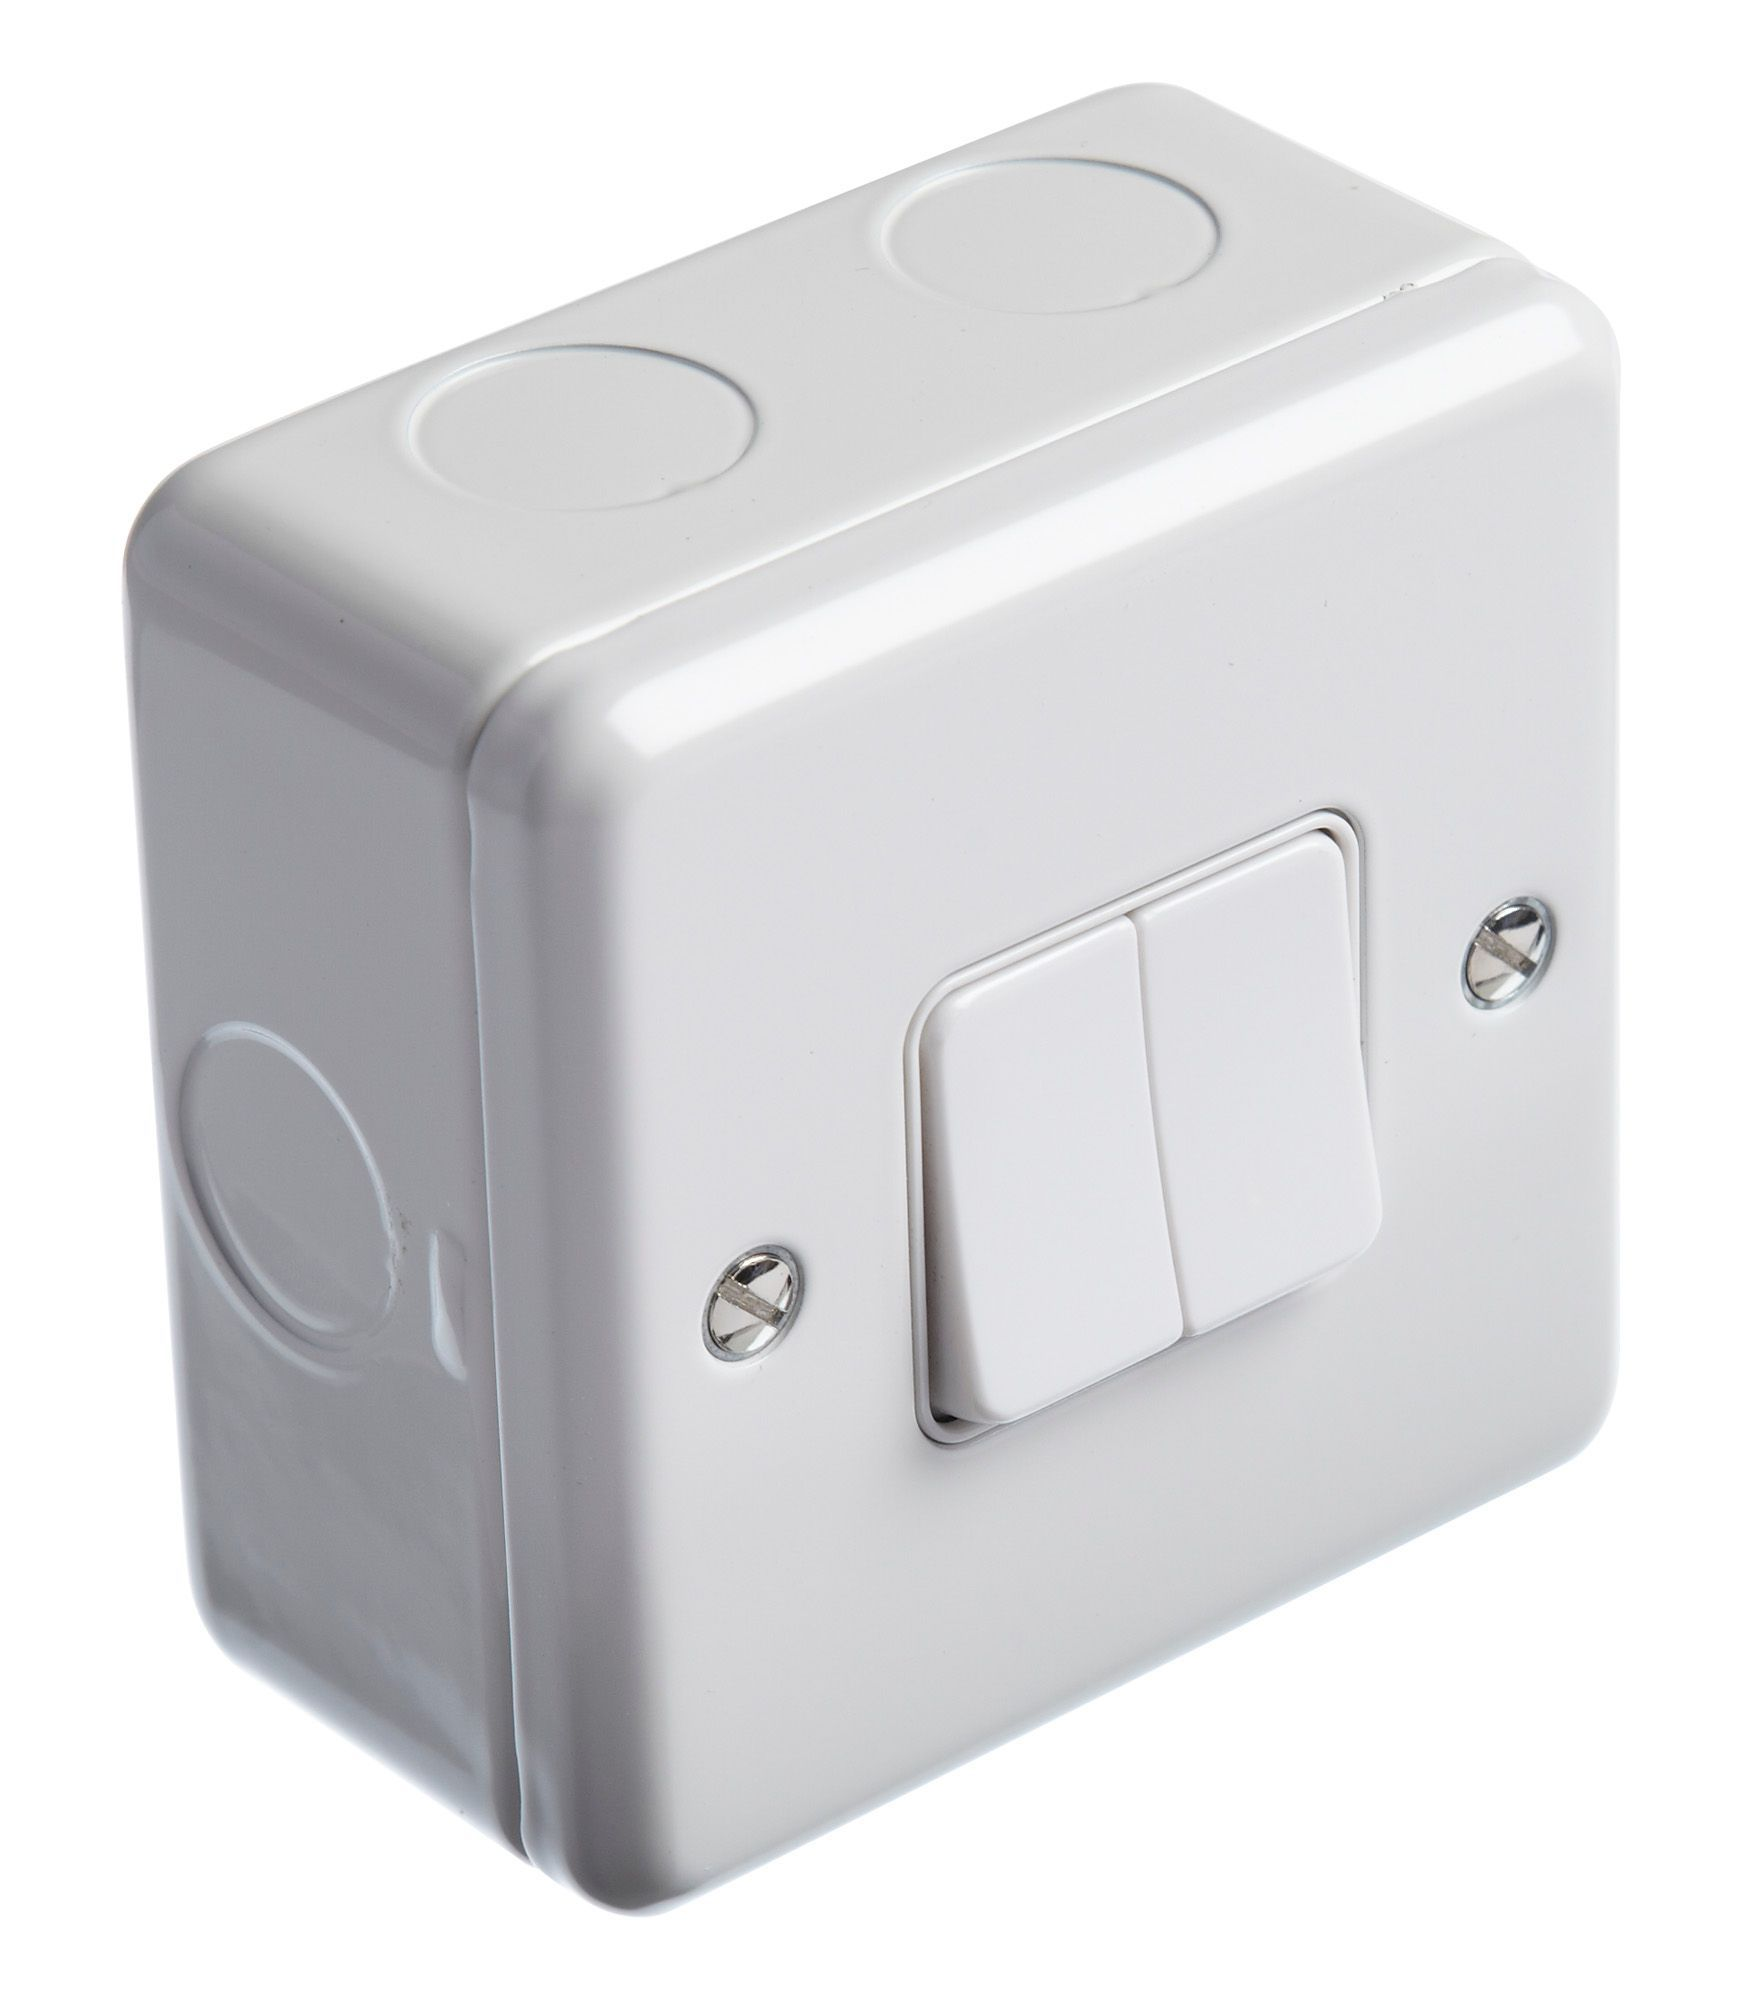 MK 13A 2-Way Double White Light Switch with Box | Departments ...